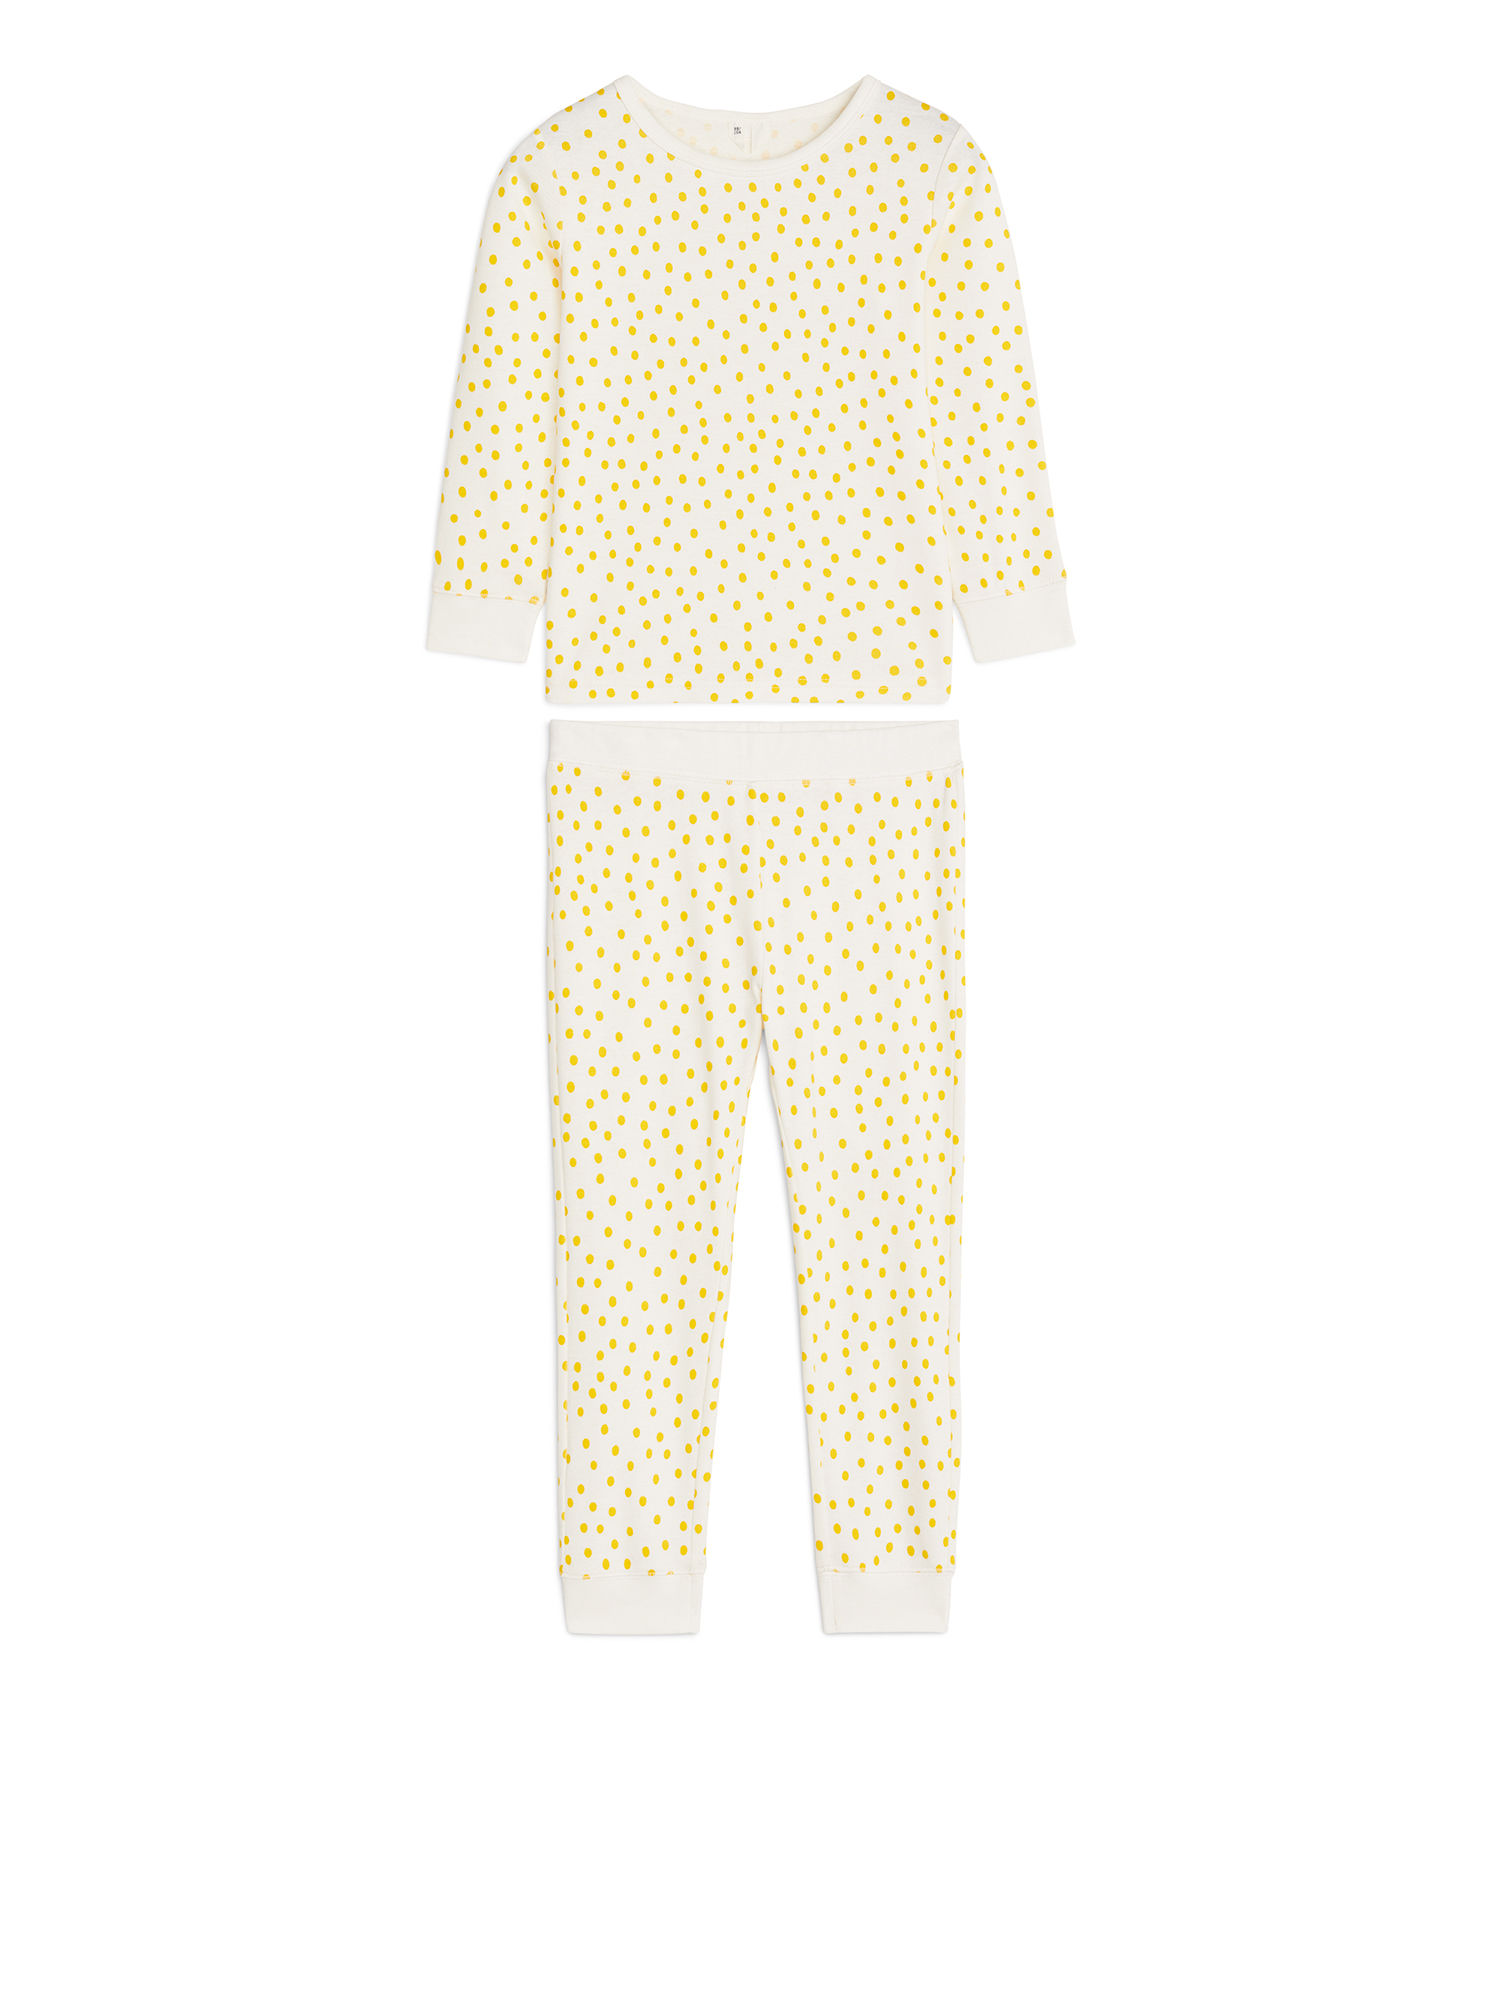 Fabric Swatch image of Arket cotton jersey pyjama set in yellow